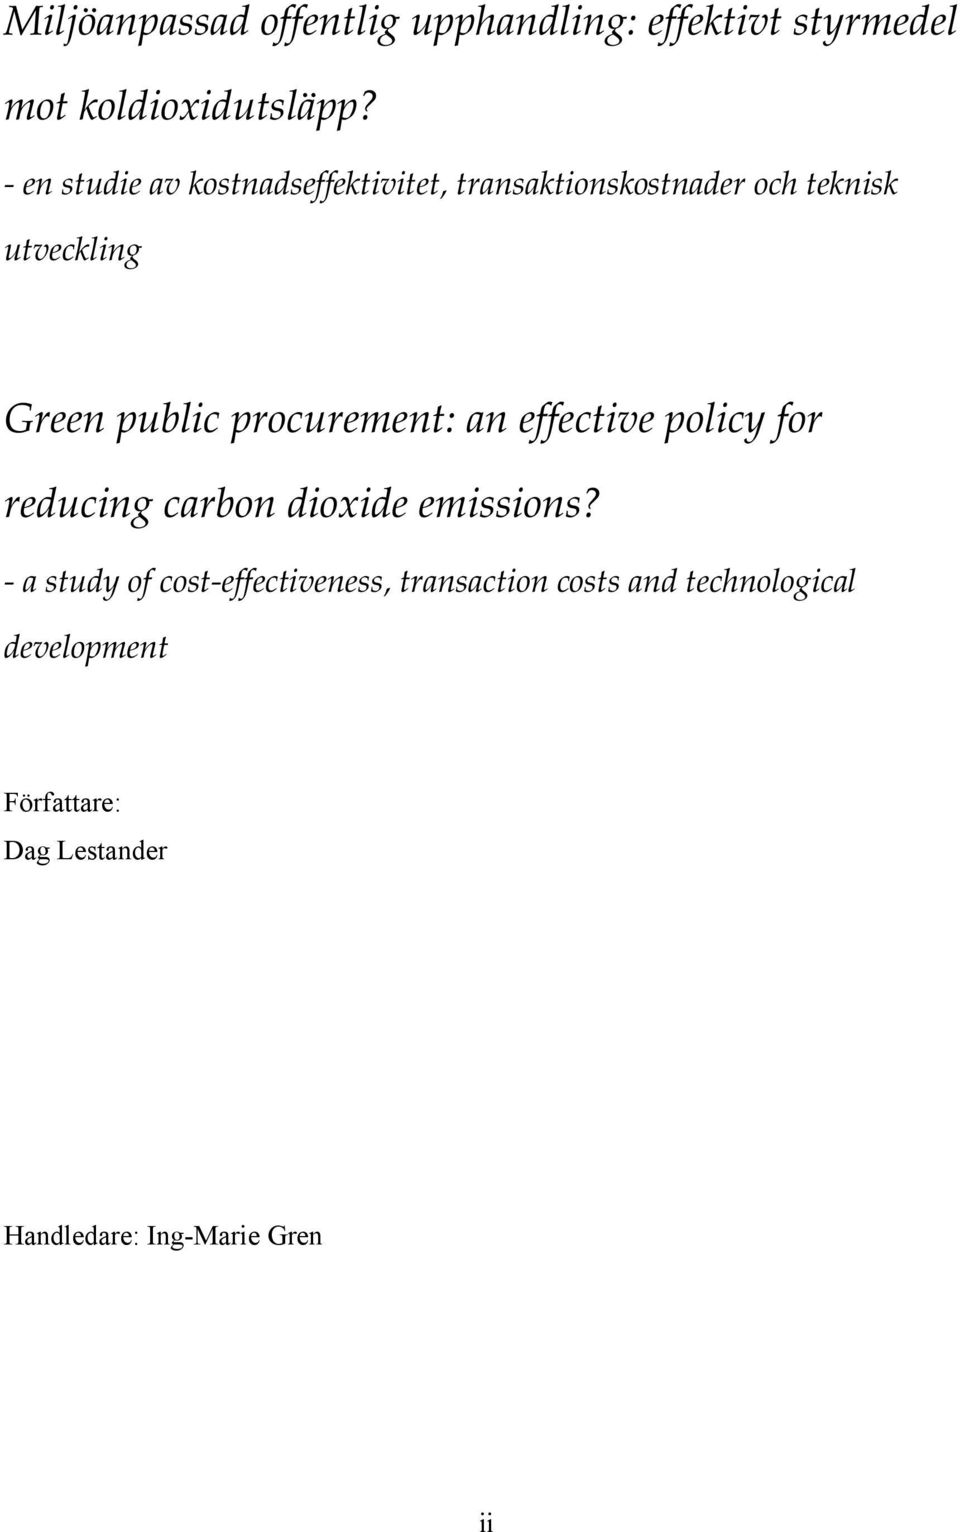 procurement: an effective policy for reducing carbon dioxide emissions?